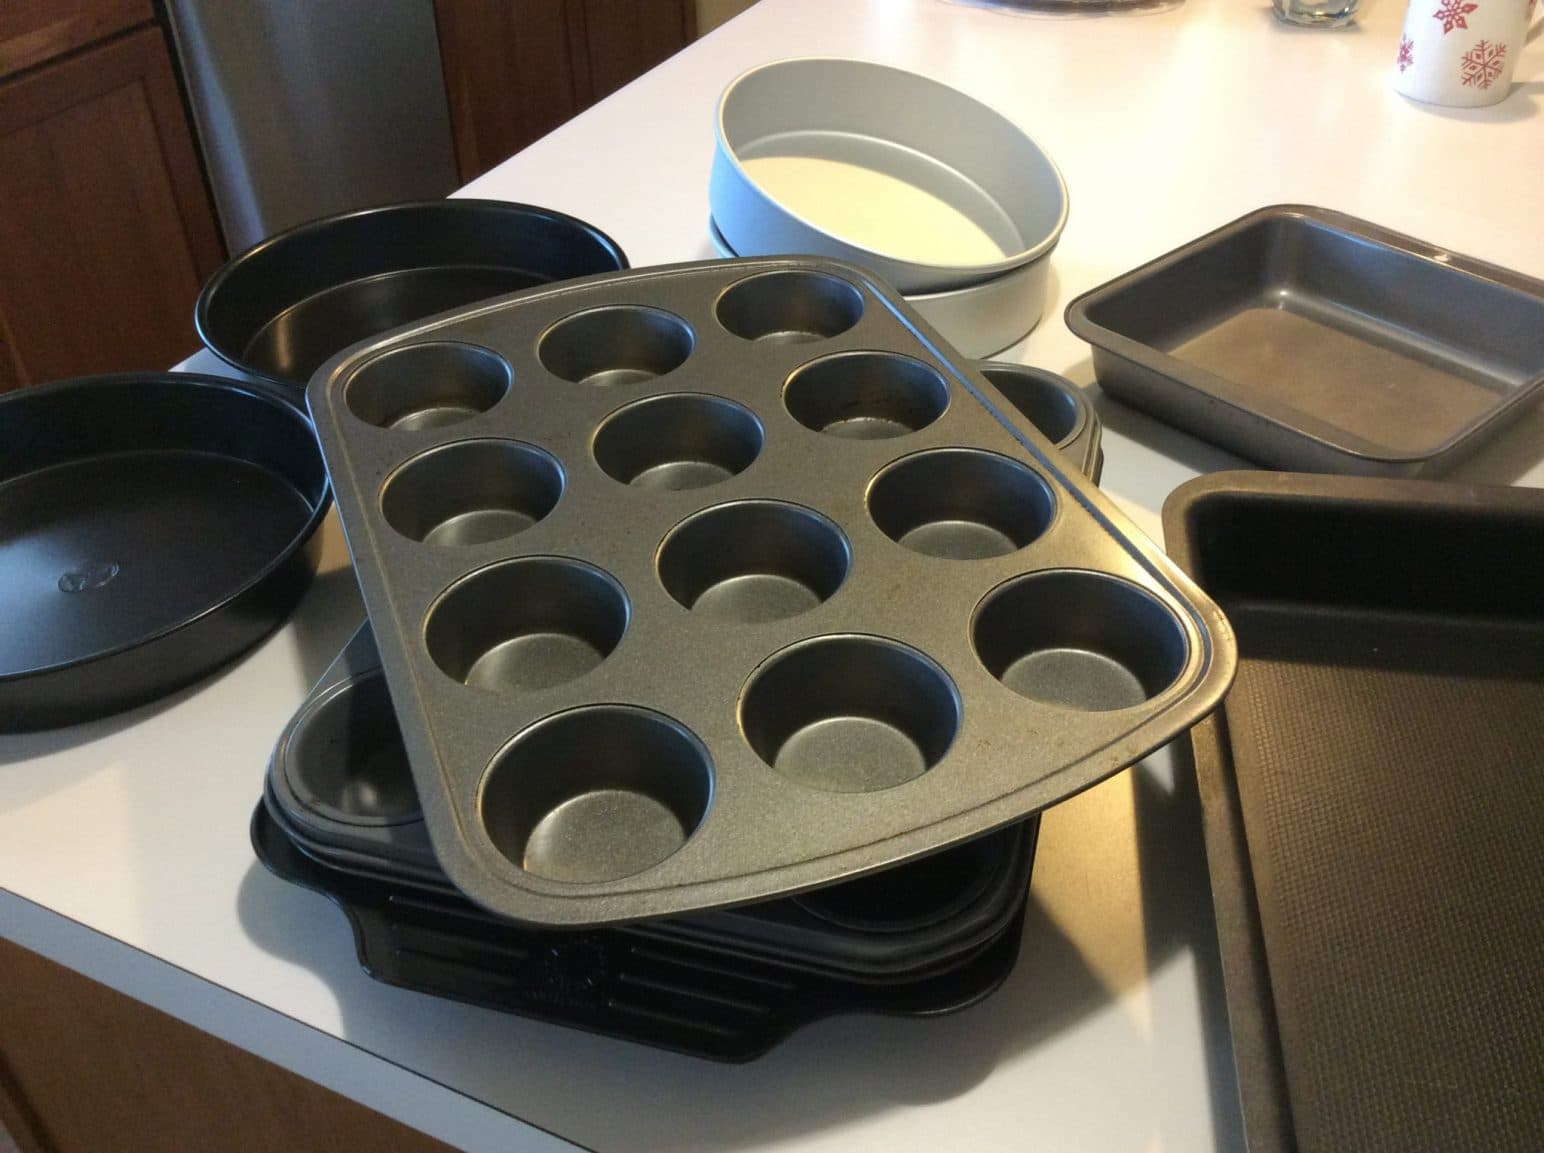 Are branded baking pans better buys?